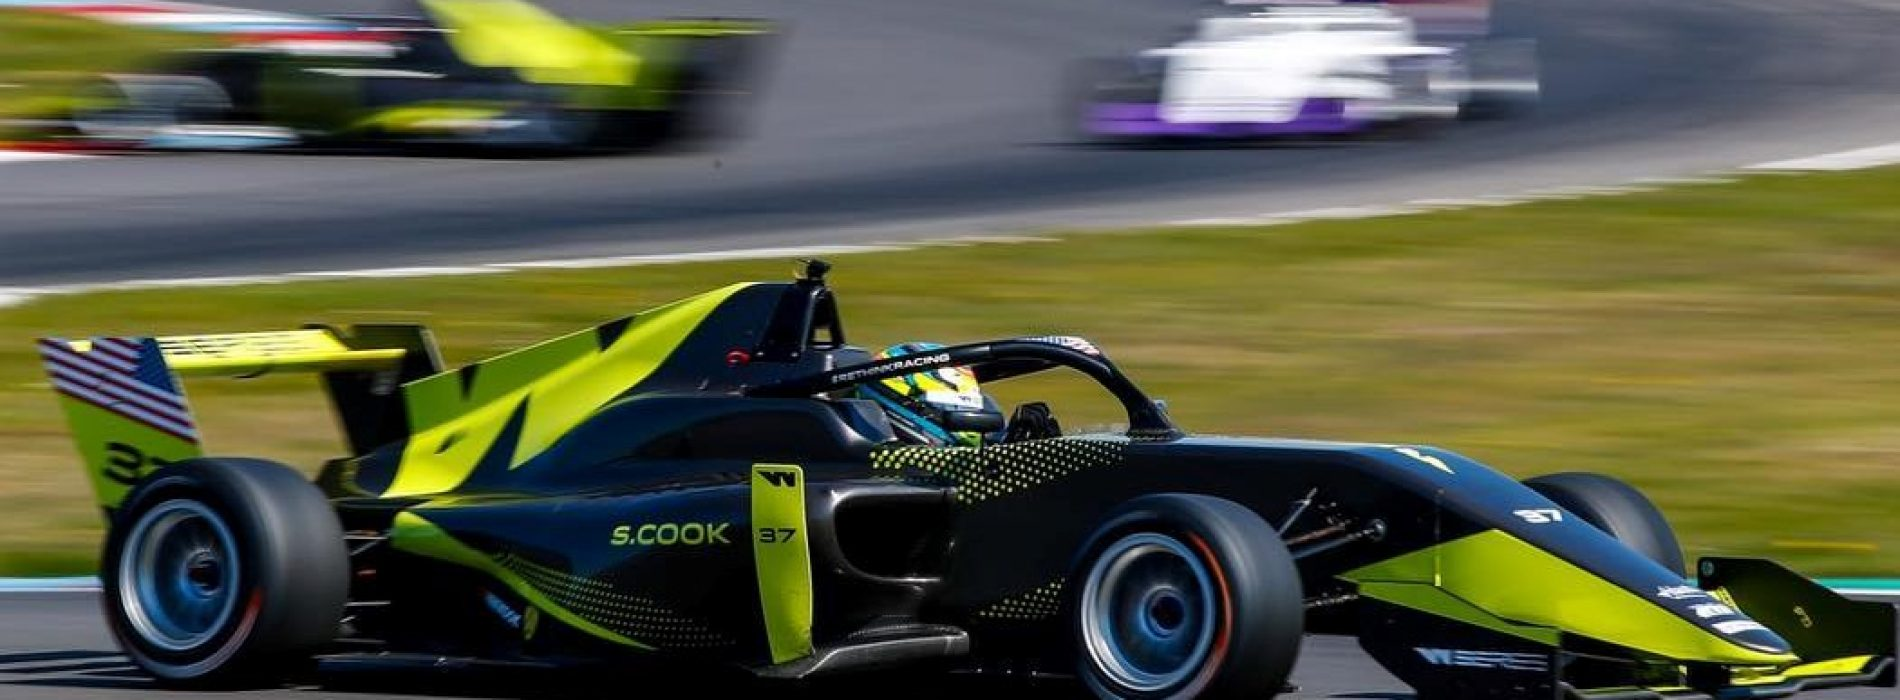 Sabre Cook mighty 2019 race season: WSeries, Infiniti Engineering scholarship at 25 years of age